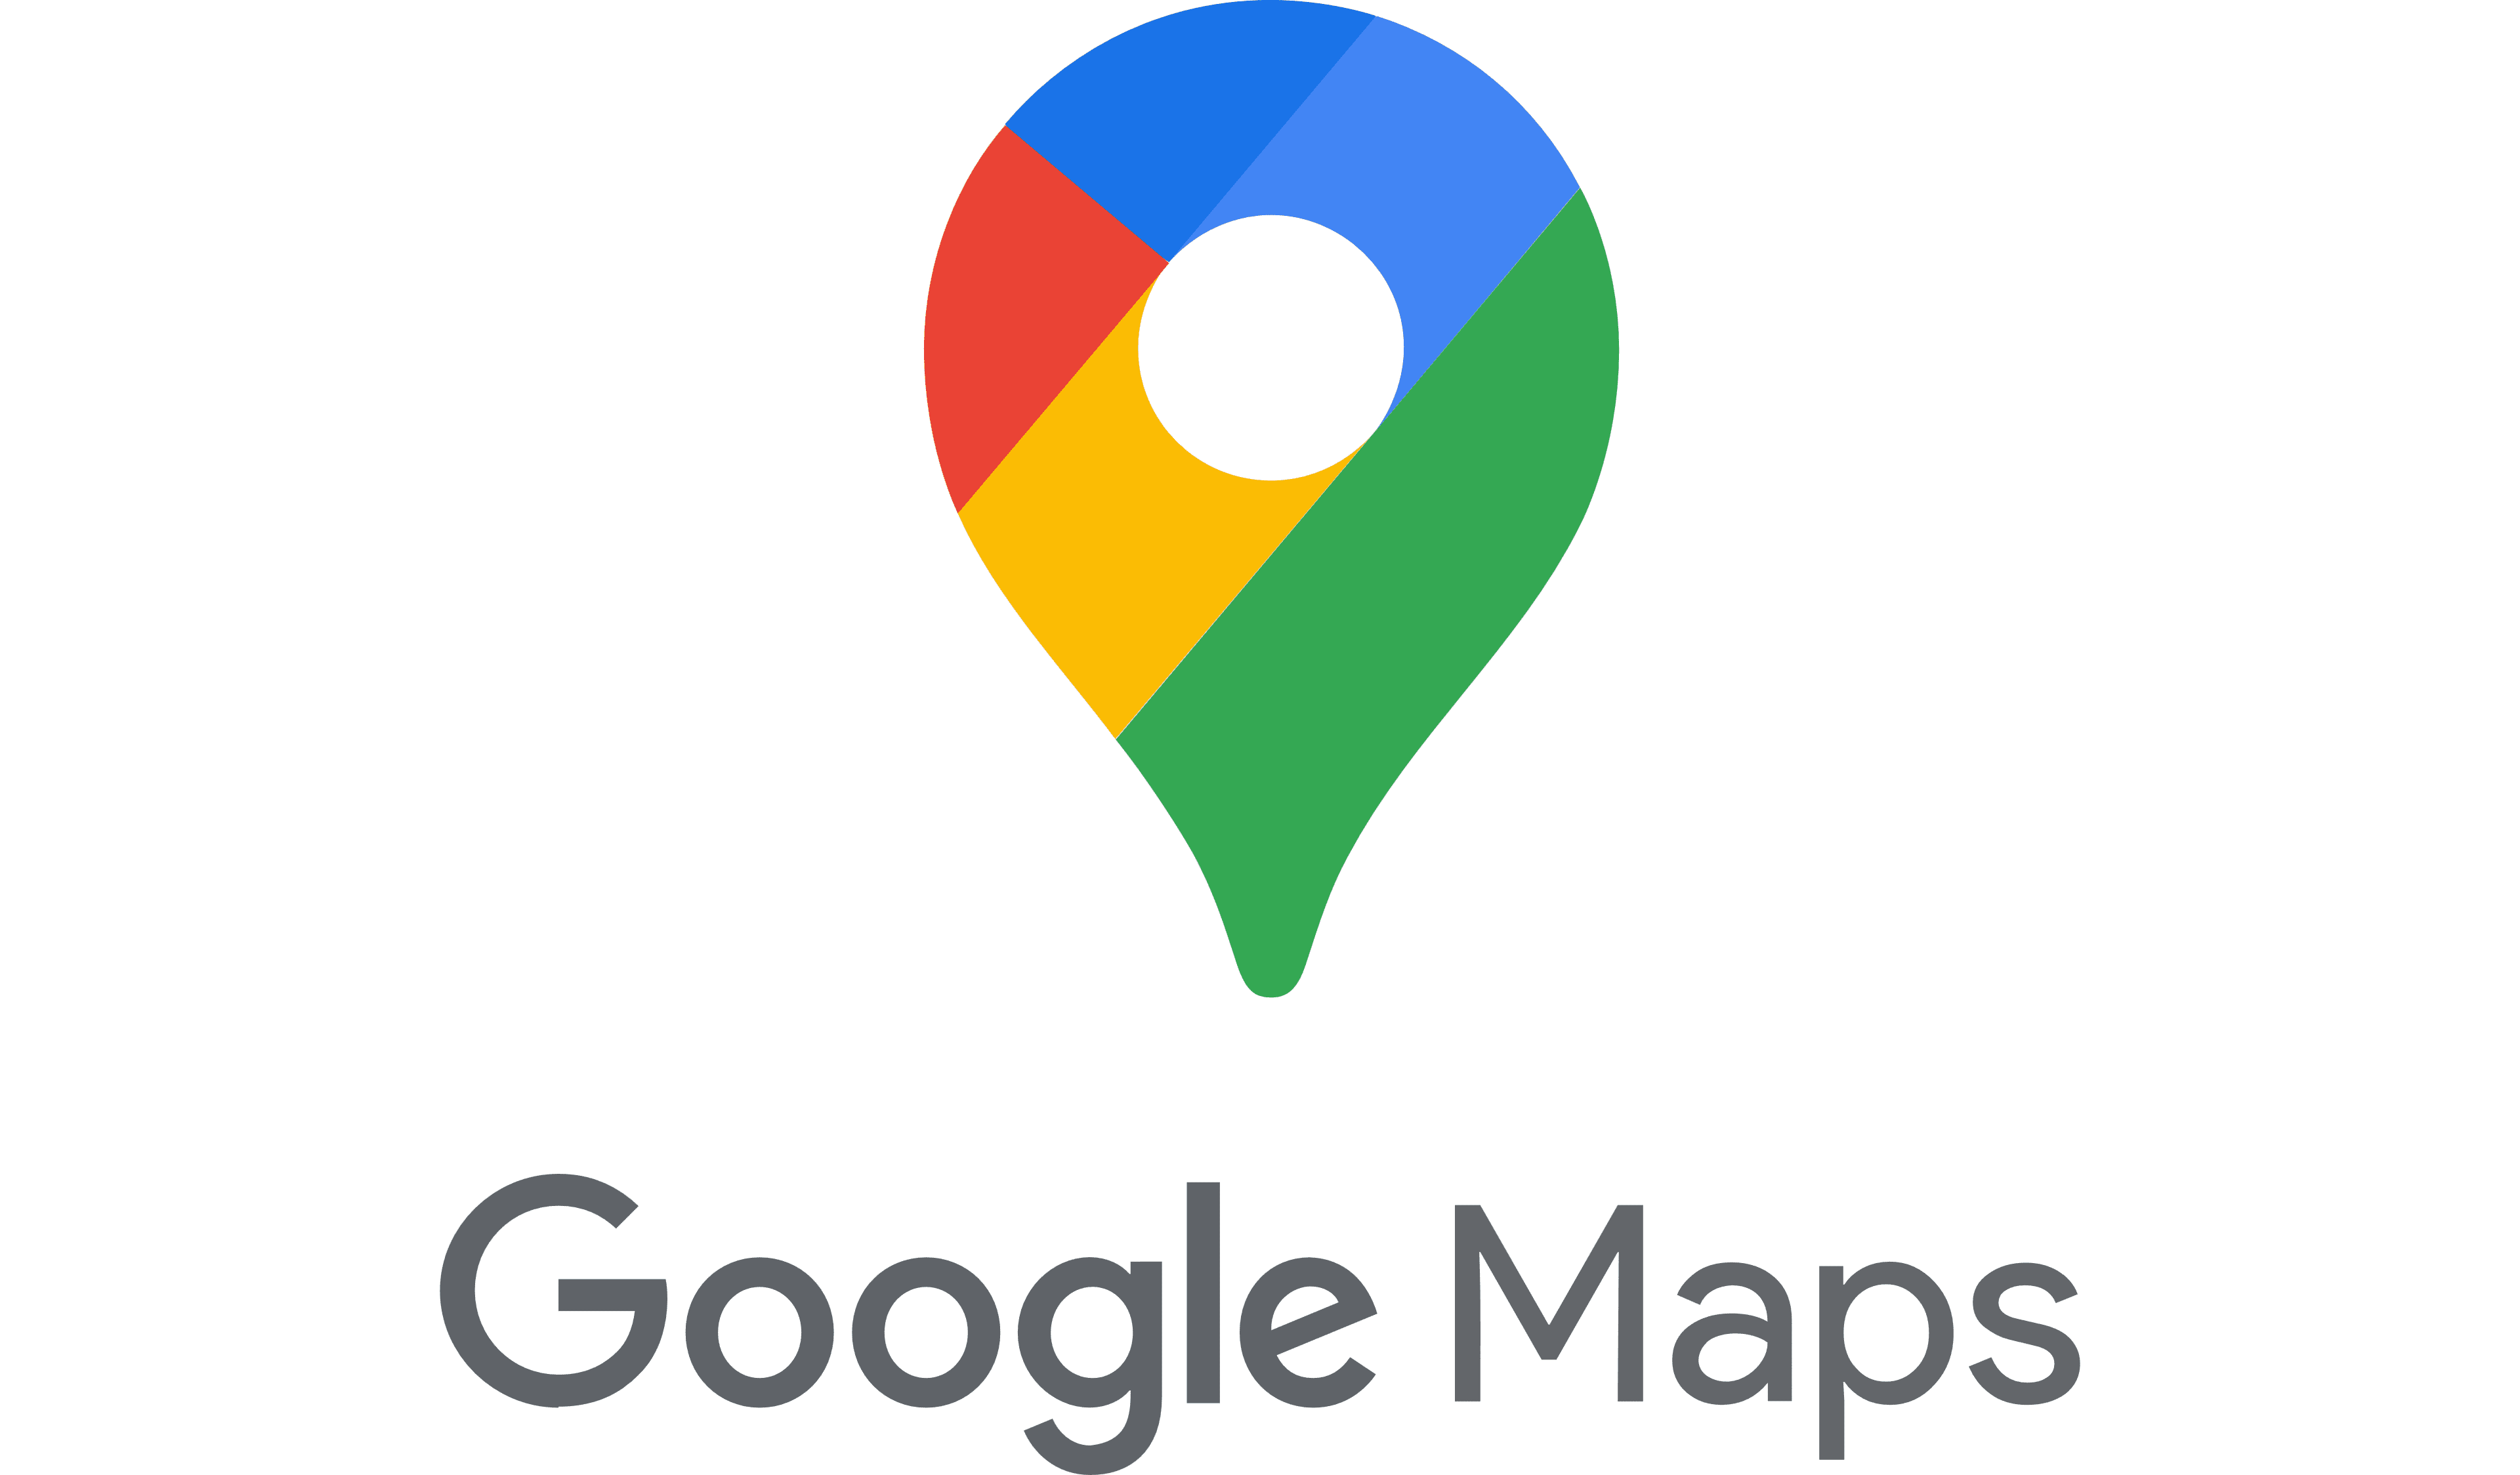 Google Maps Logo   evolution history and meaning, PNG